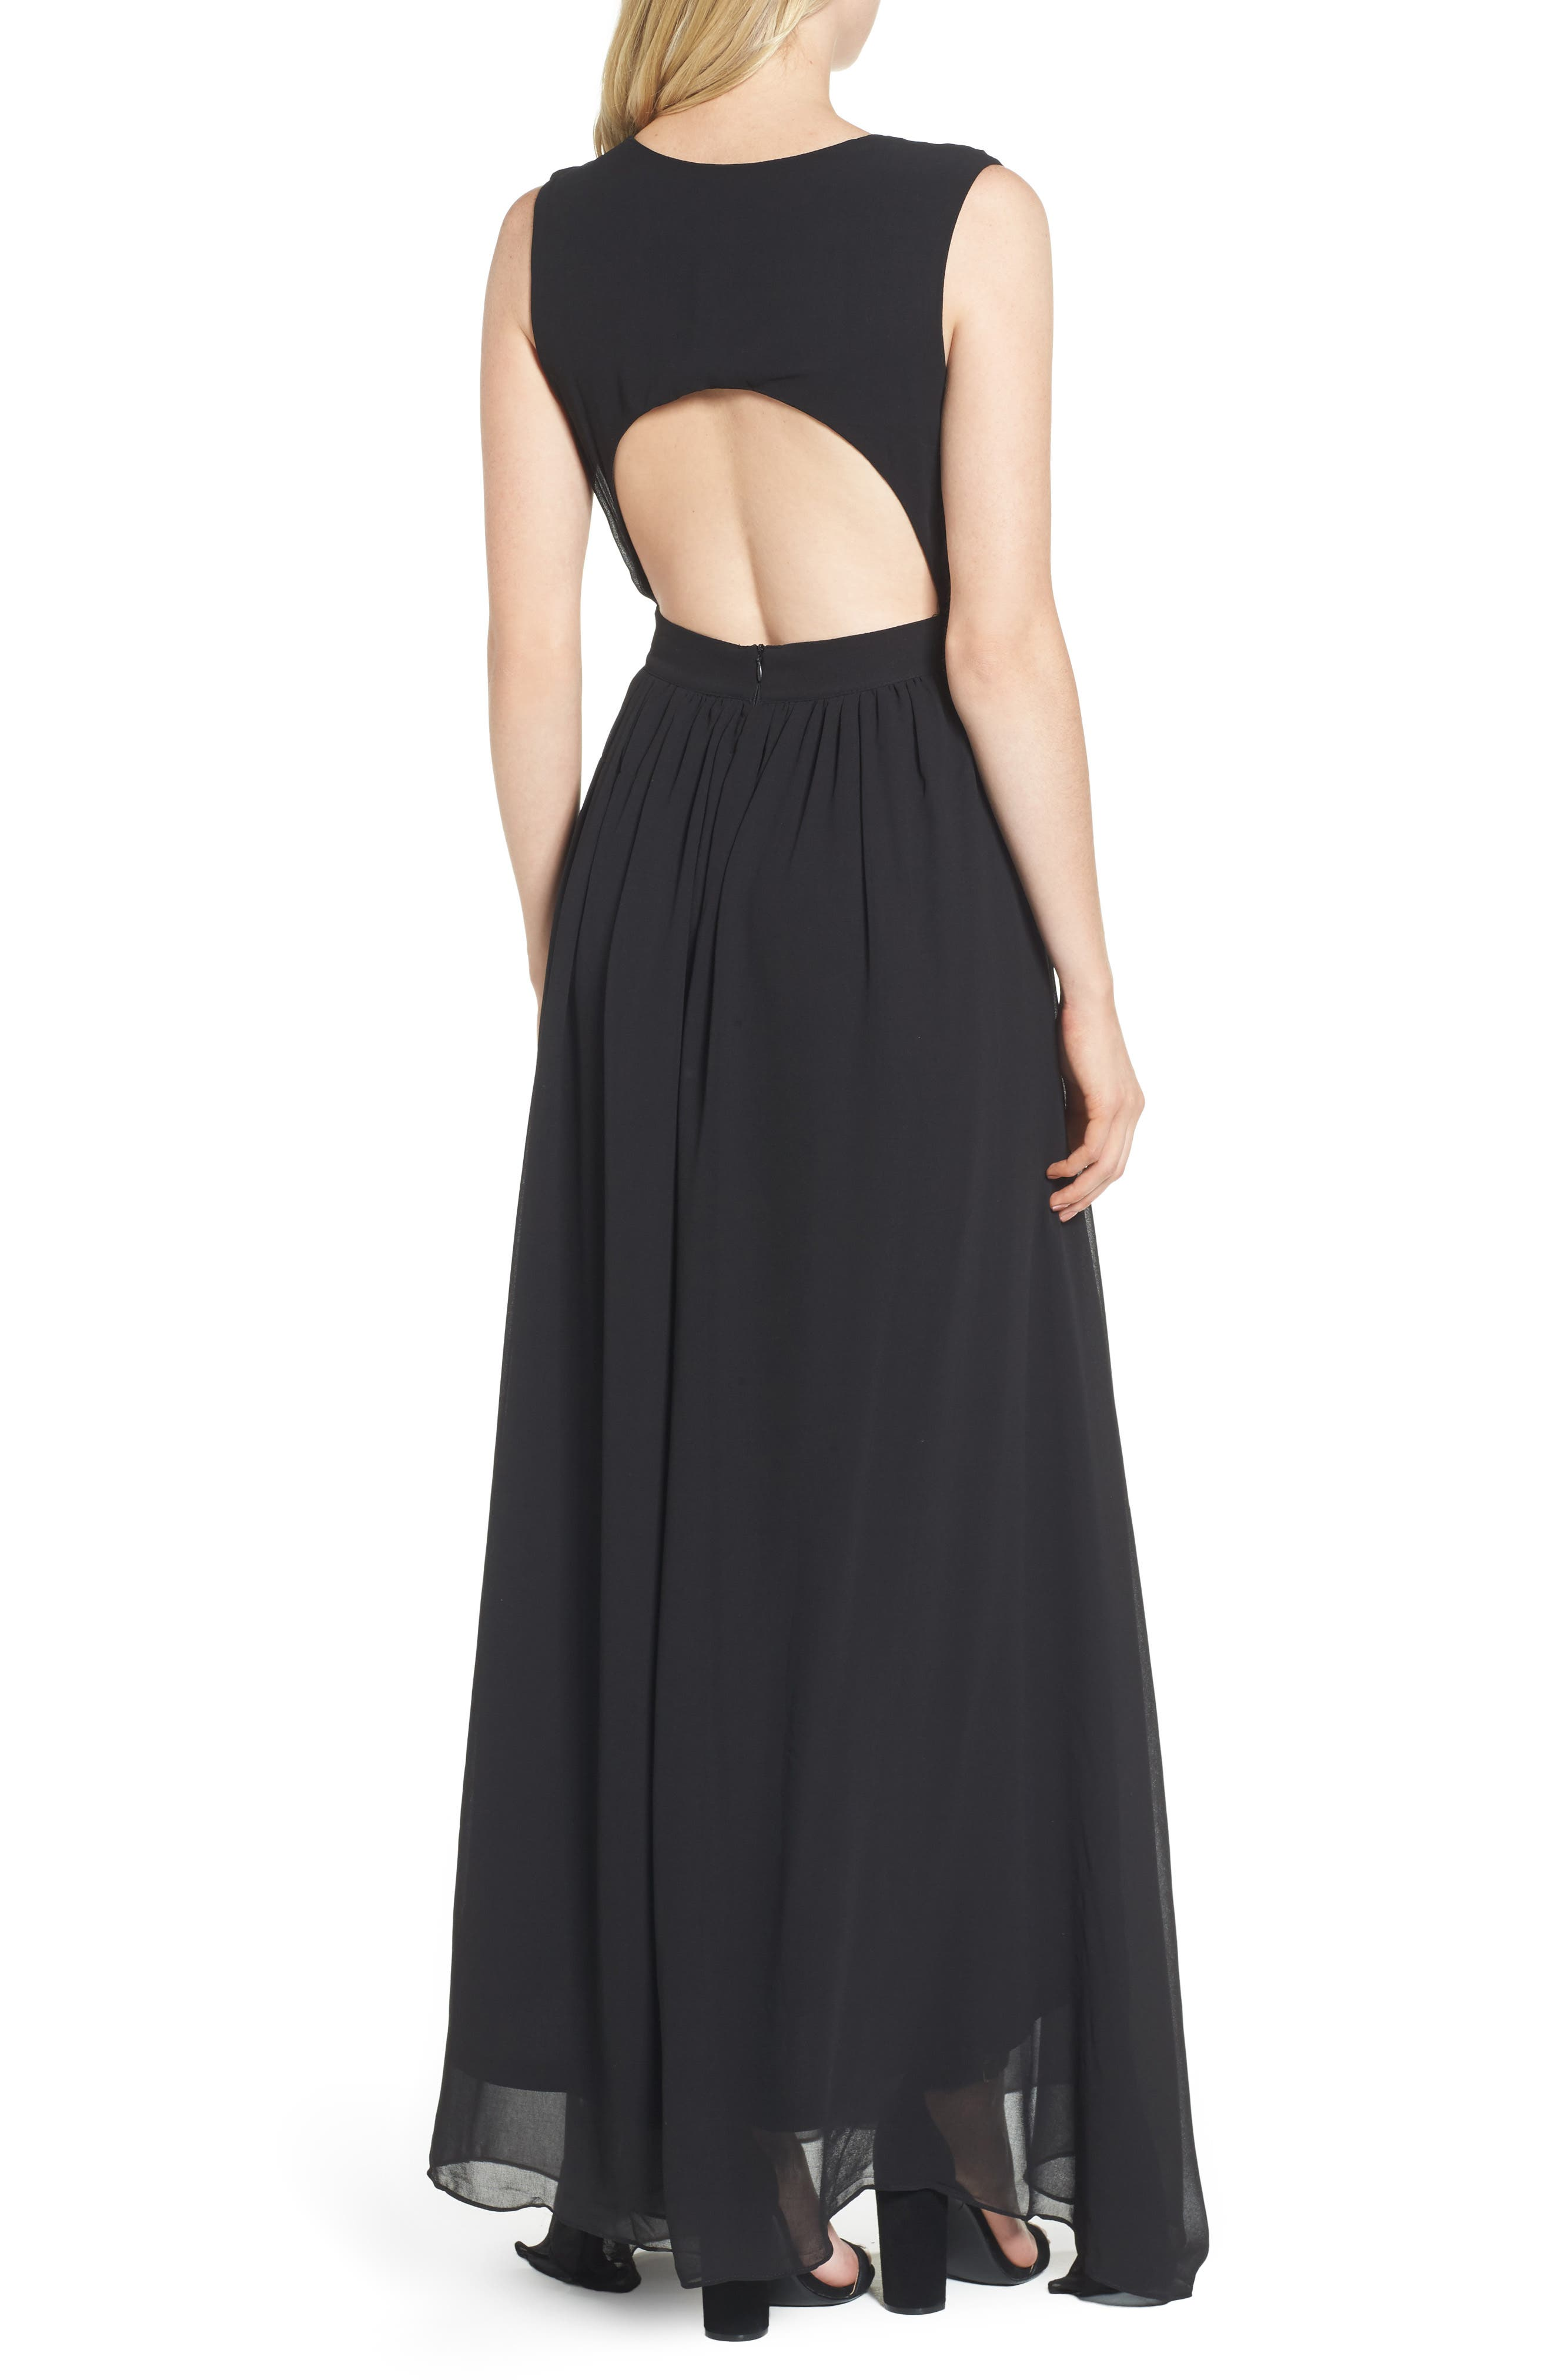 Bishop + Young Plunging Maxi Dress,                             Alternate thumbnail 2, color,                             001